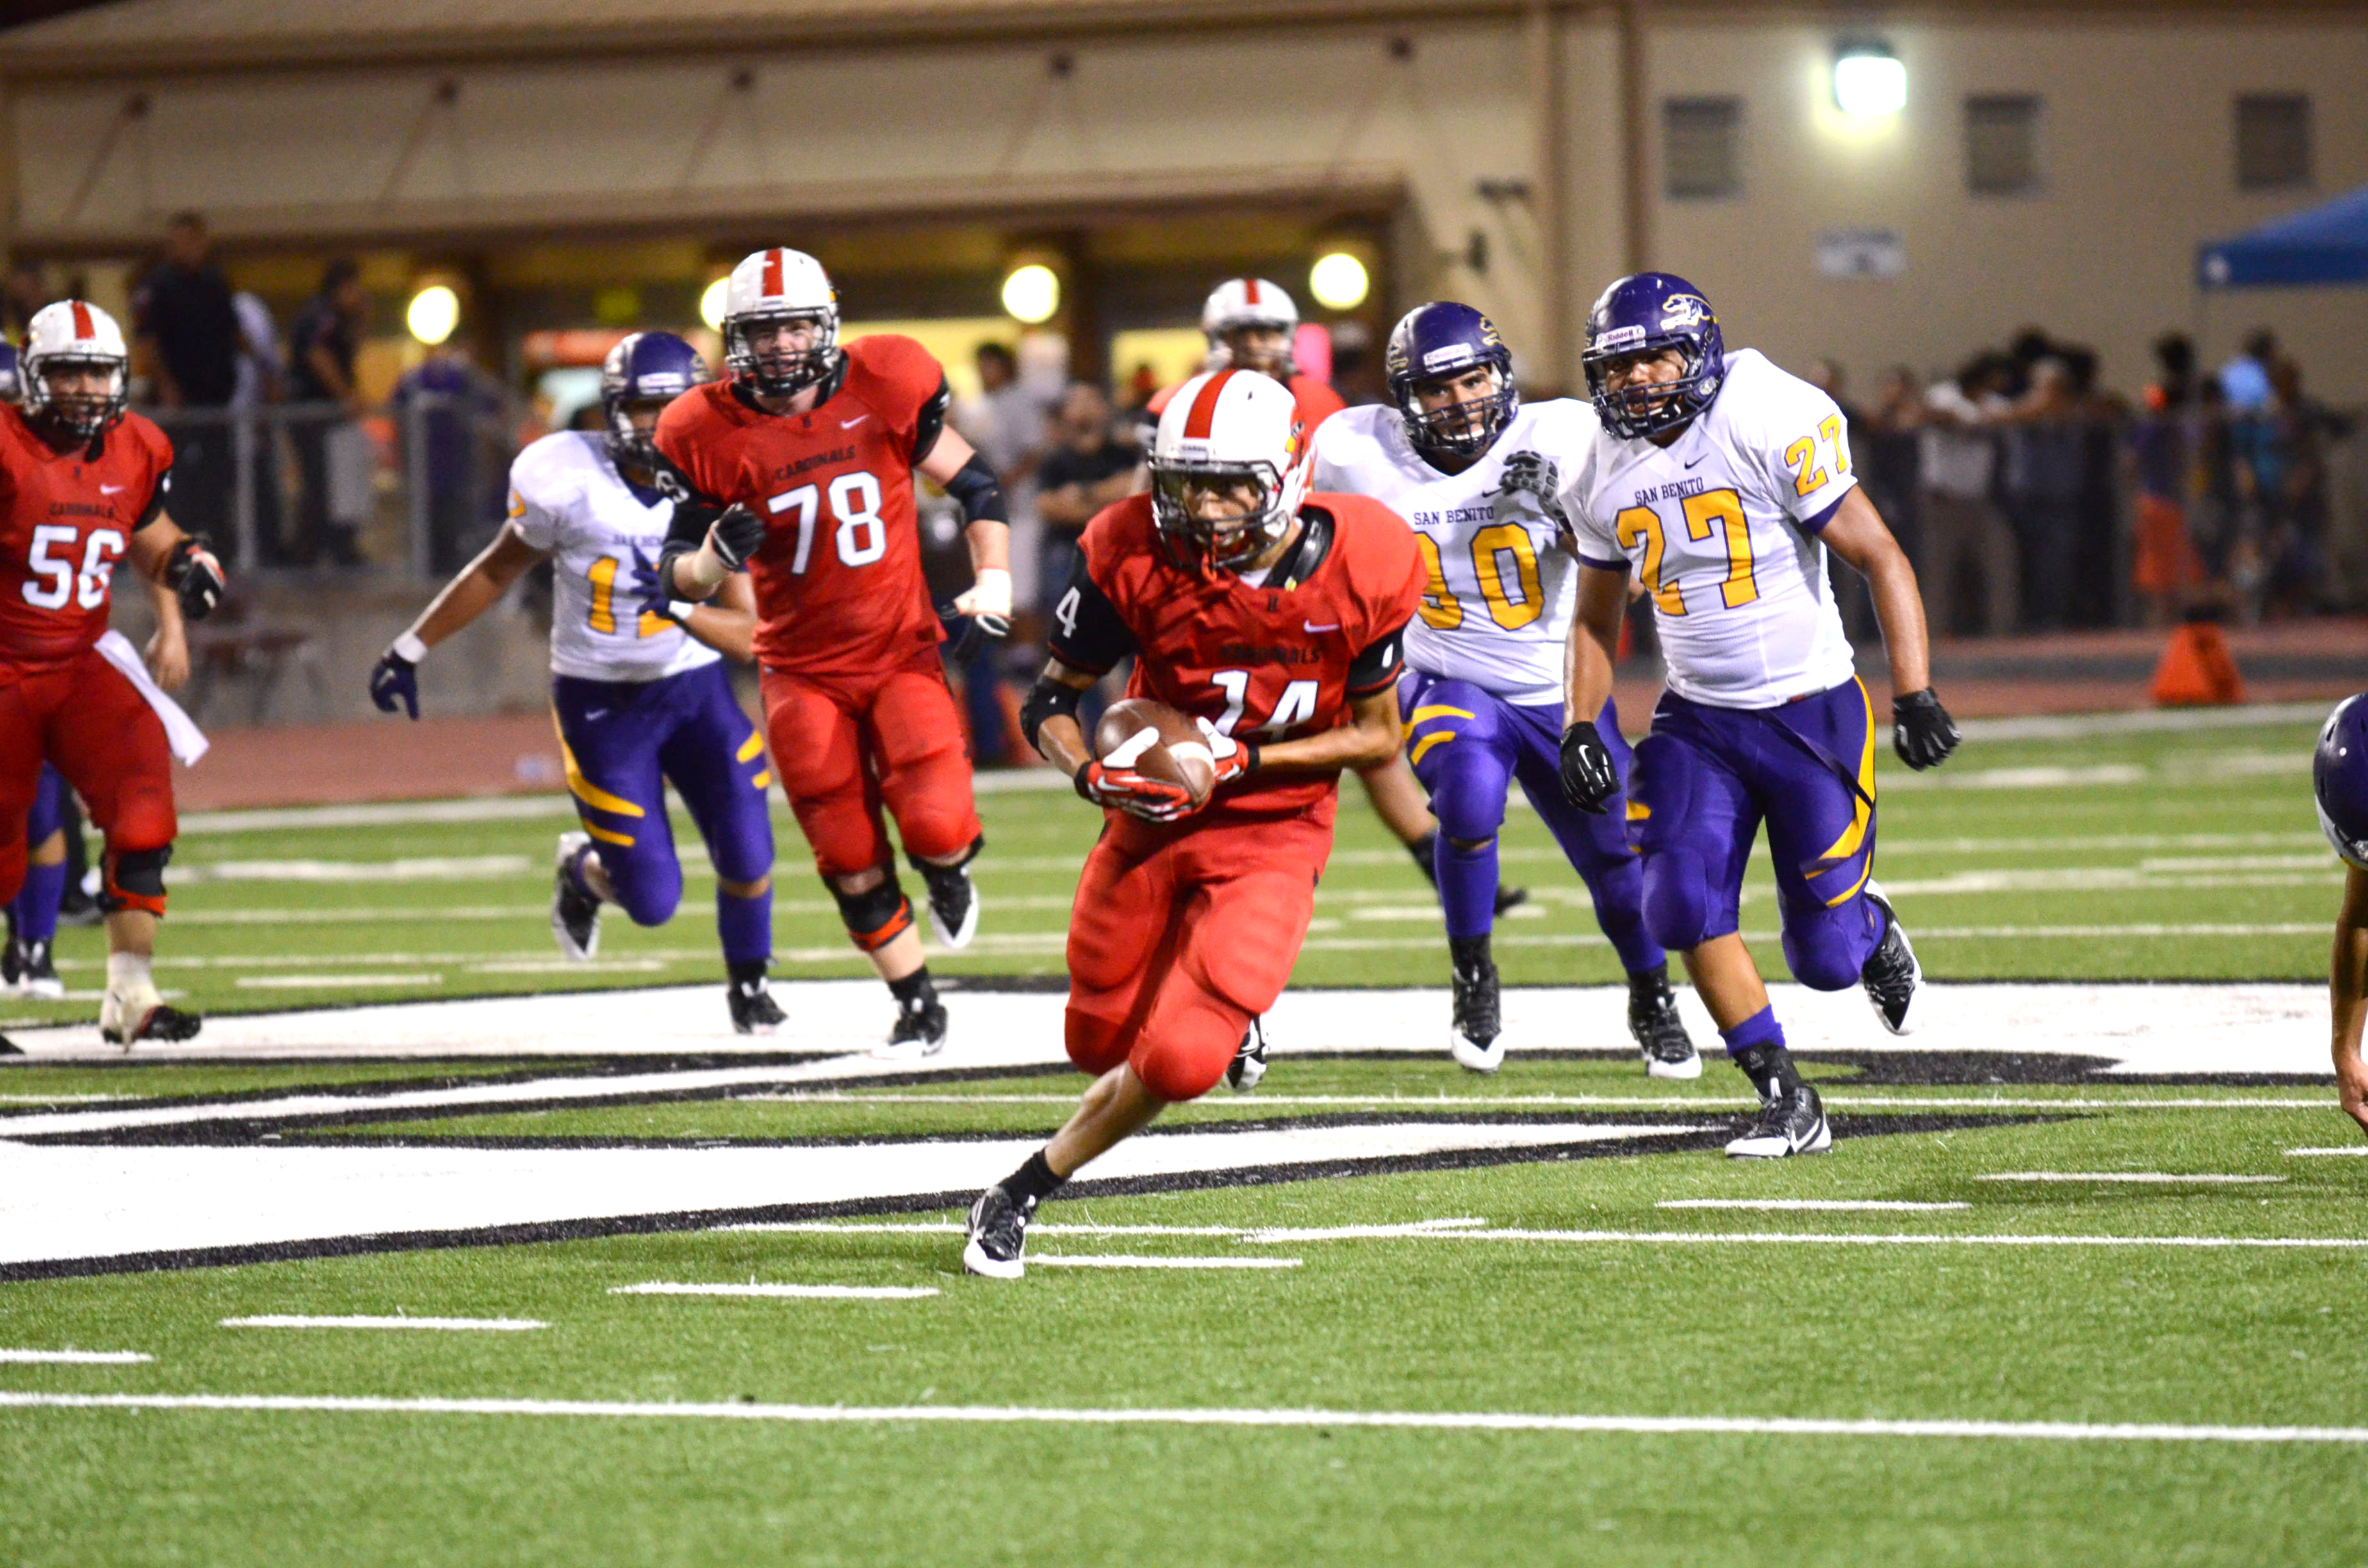 Battle of the Arroyo receives national attention